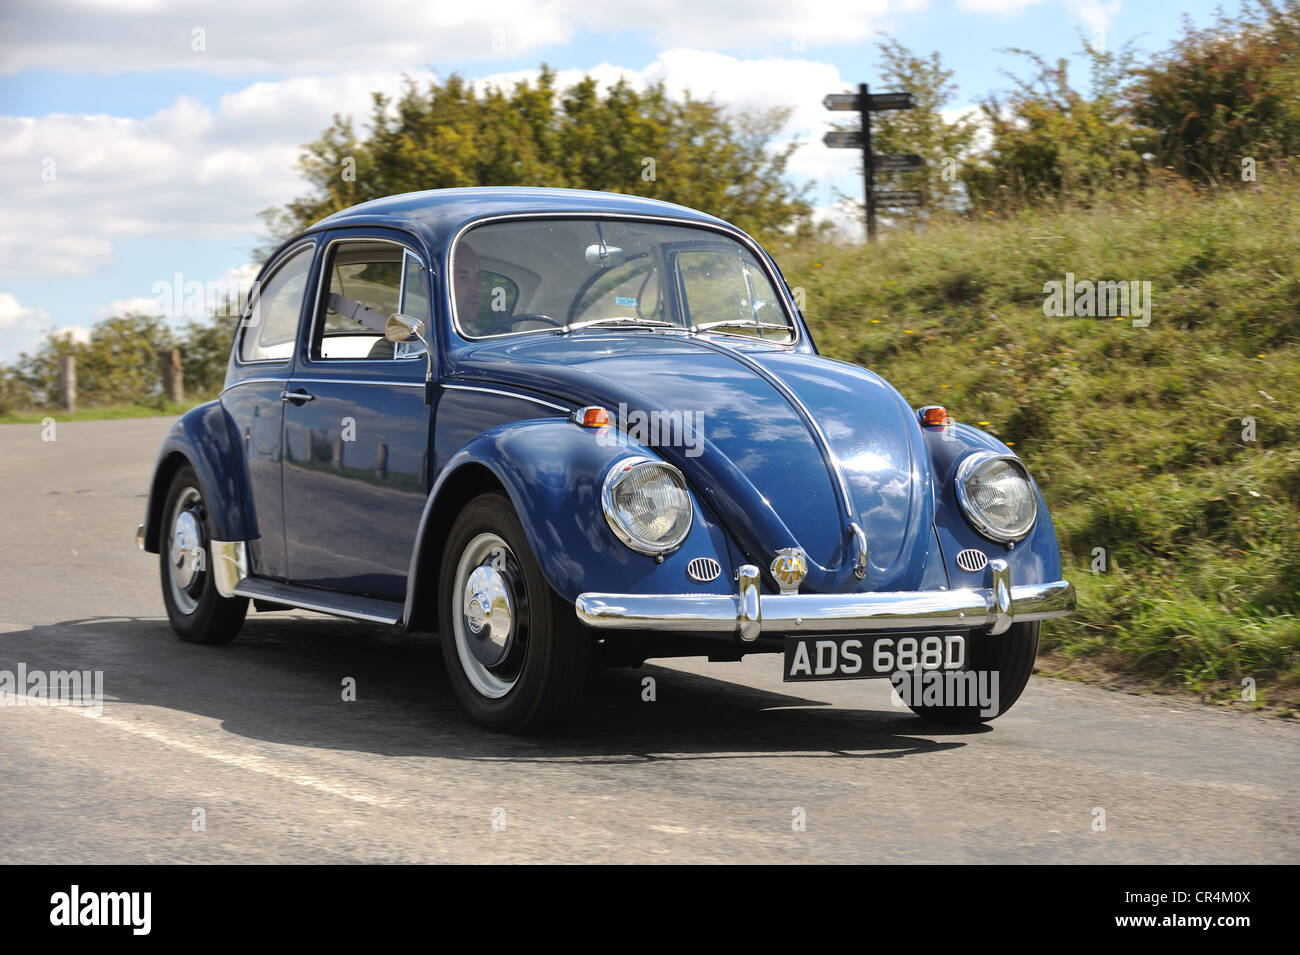 1966 VW Volkswagen Beetle classic stock air cooled bug cornering - Stock Image